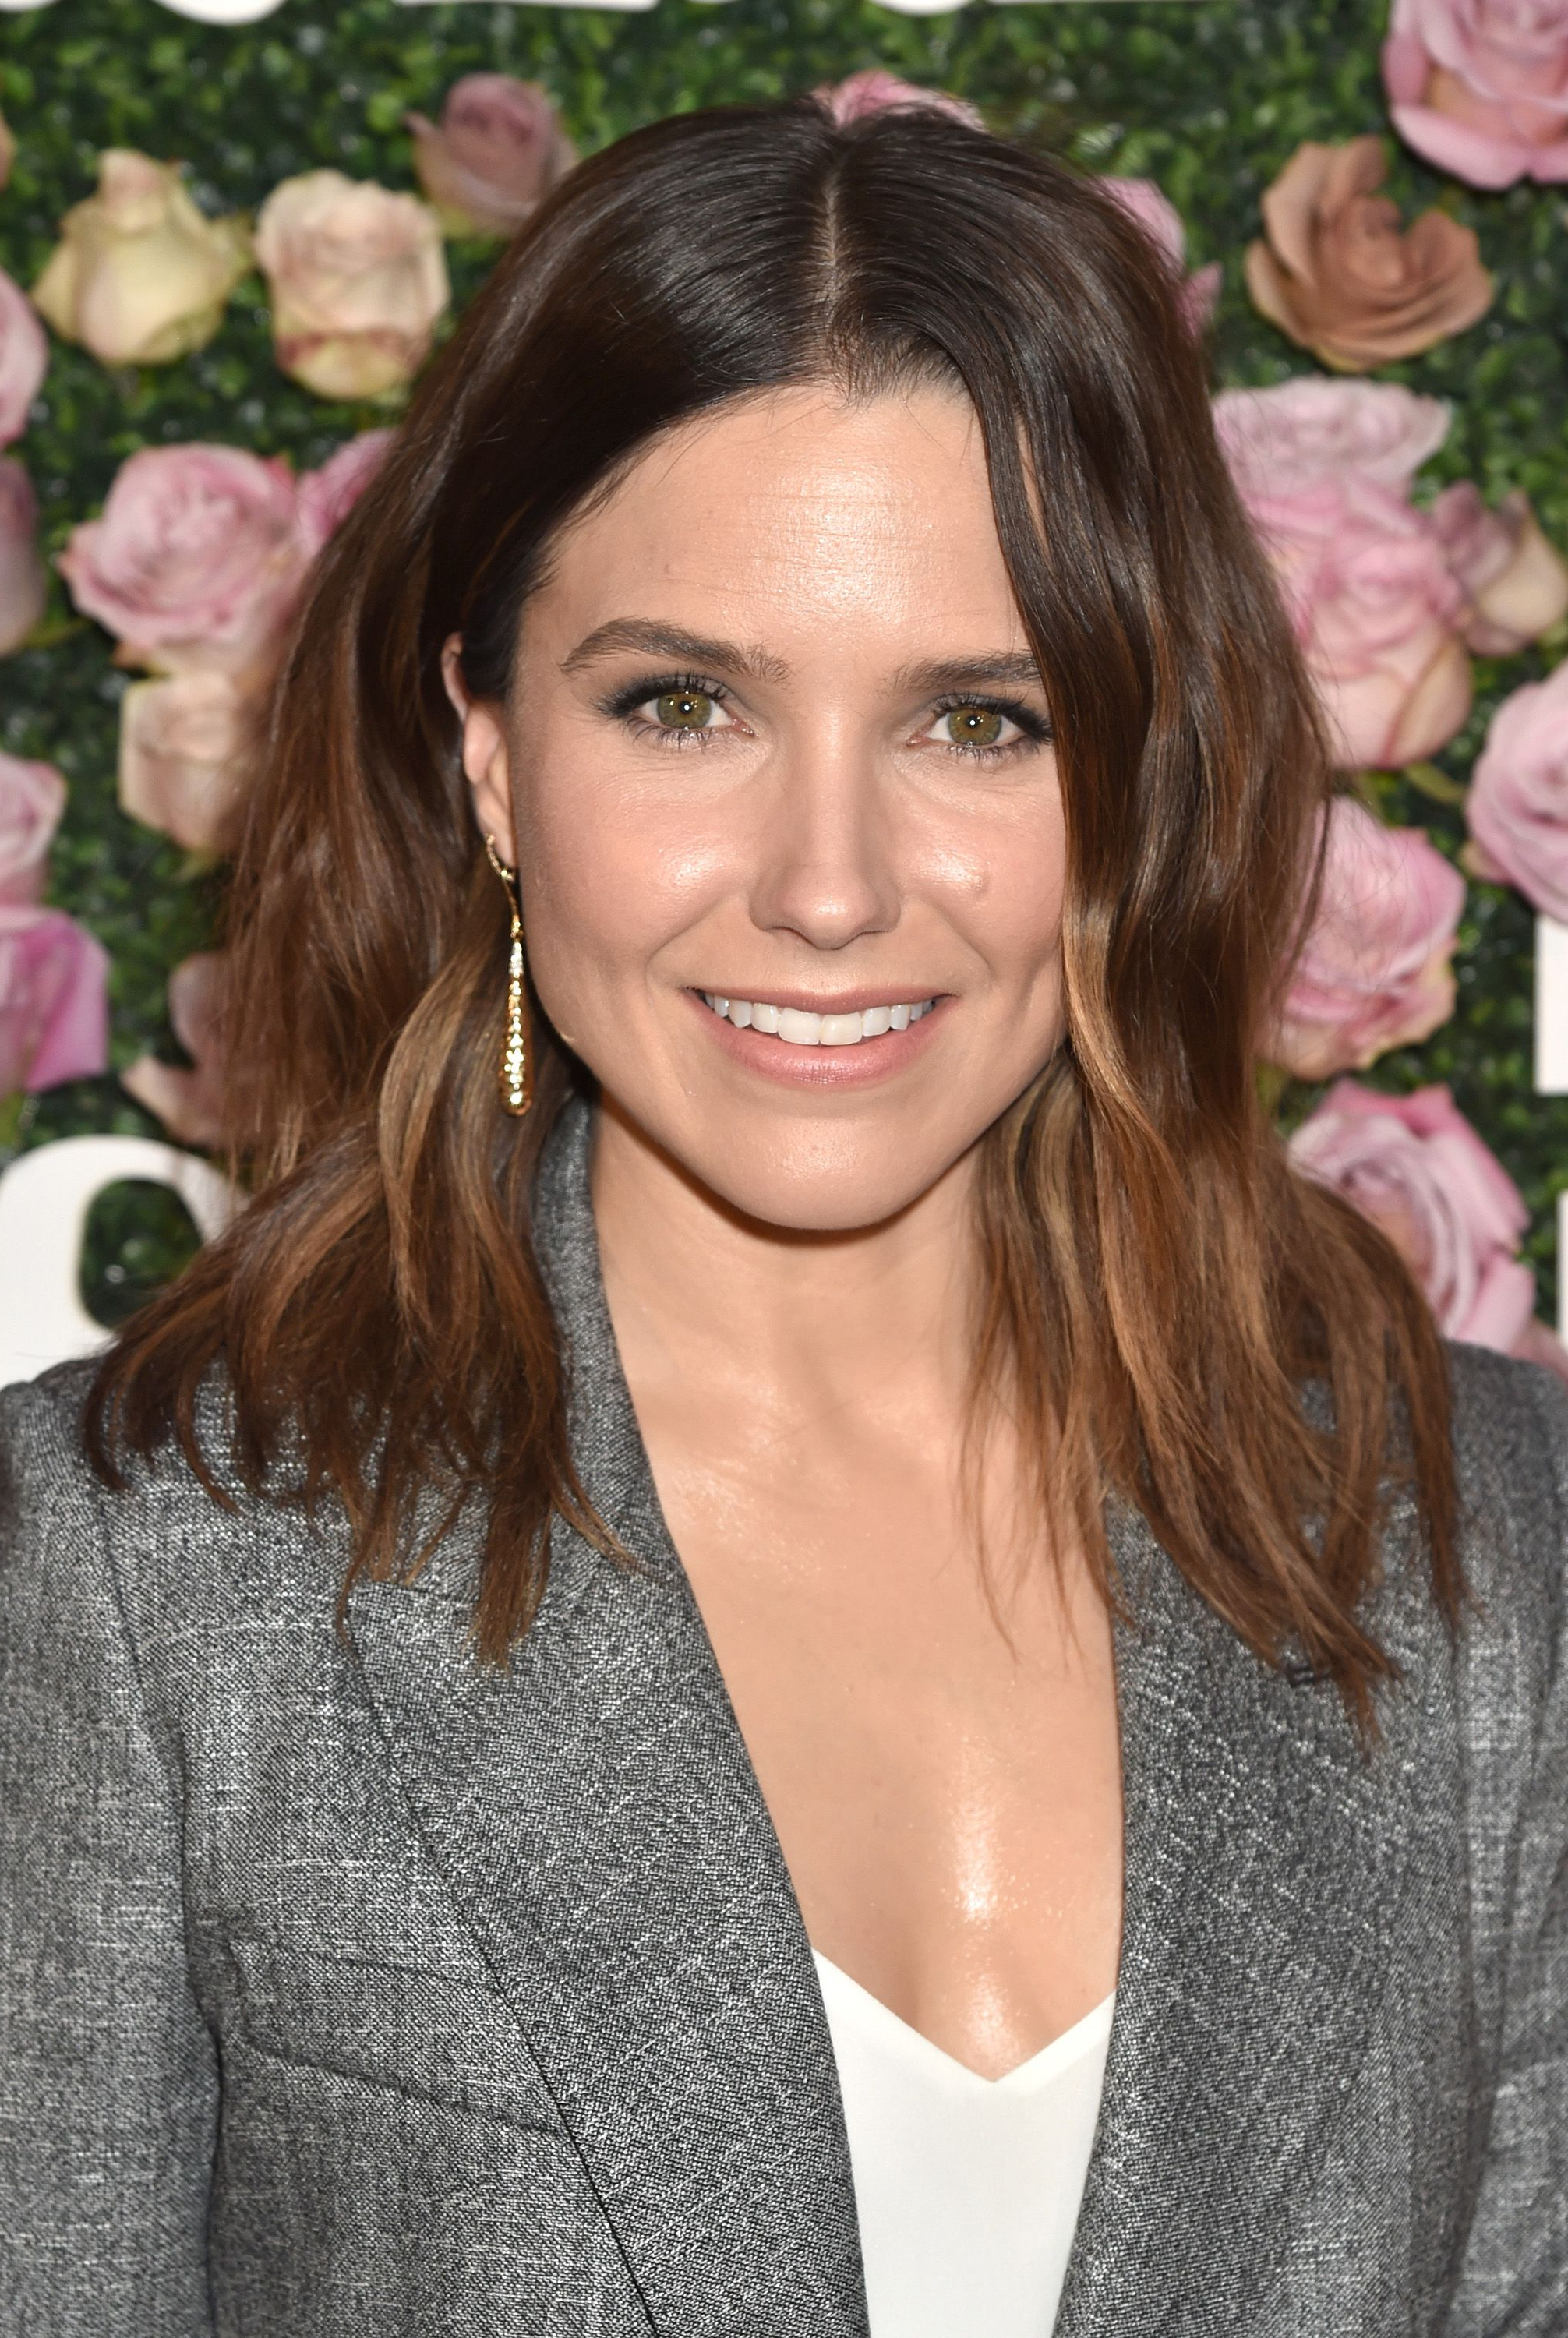 35 Best Haircuts For Women Over 30 – Short & Long Hairstyle Ideas For Well Known Sophia Bush Medium Hairstyles (Gallery 12 of 20)